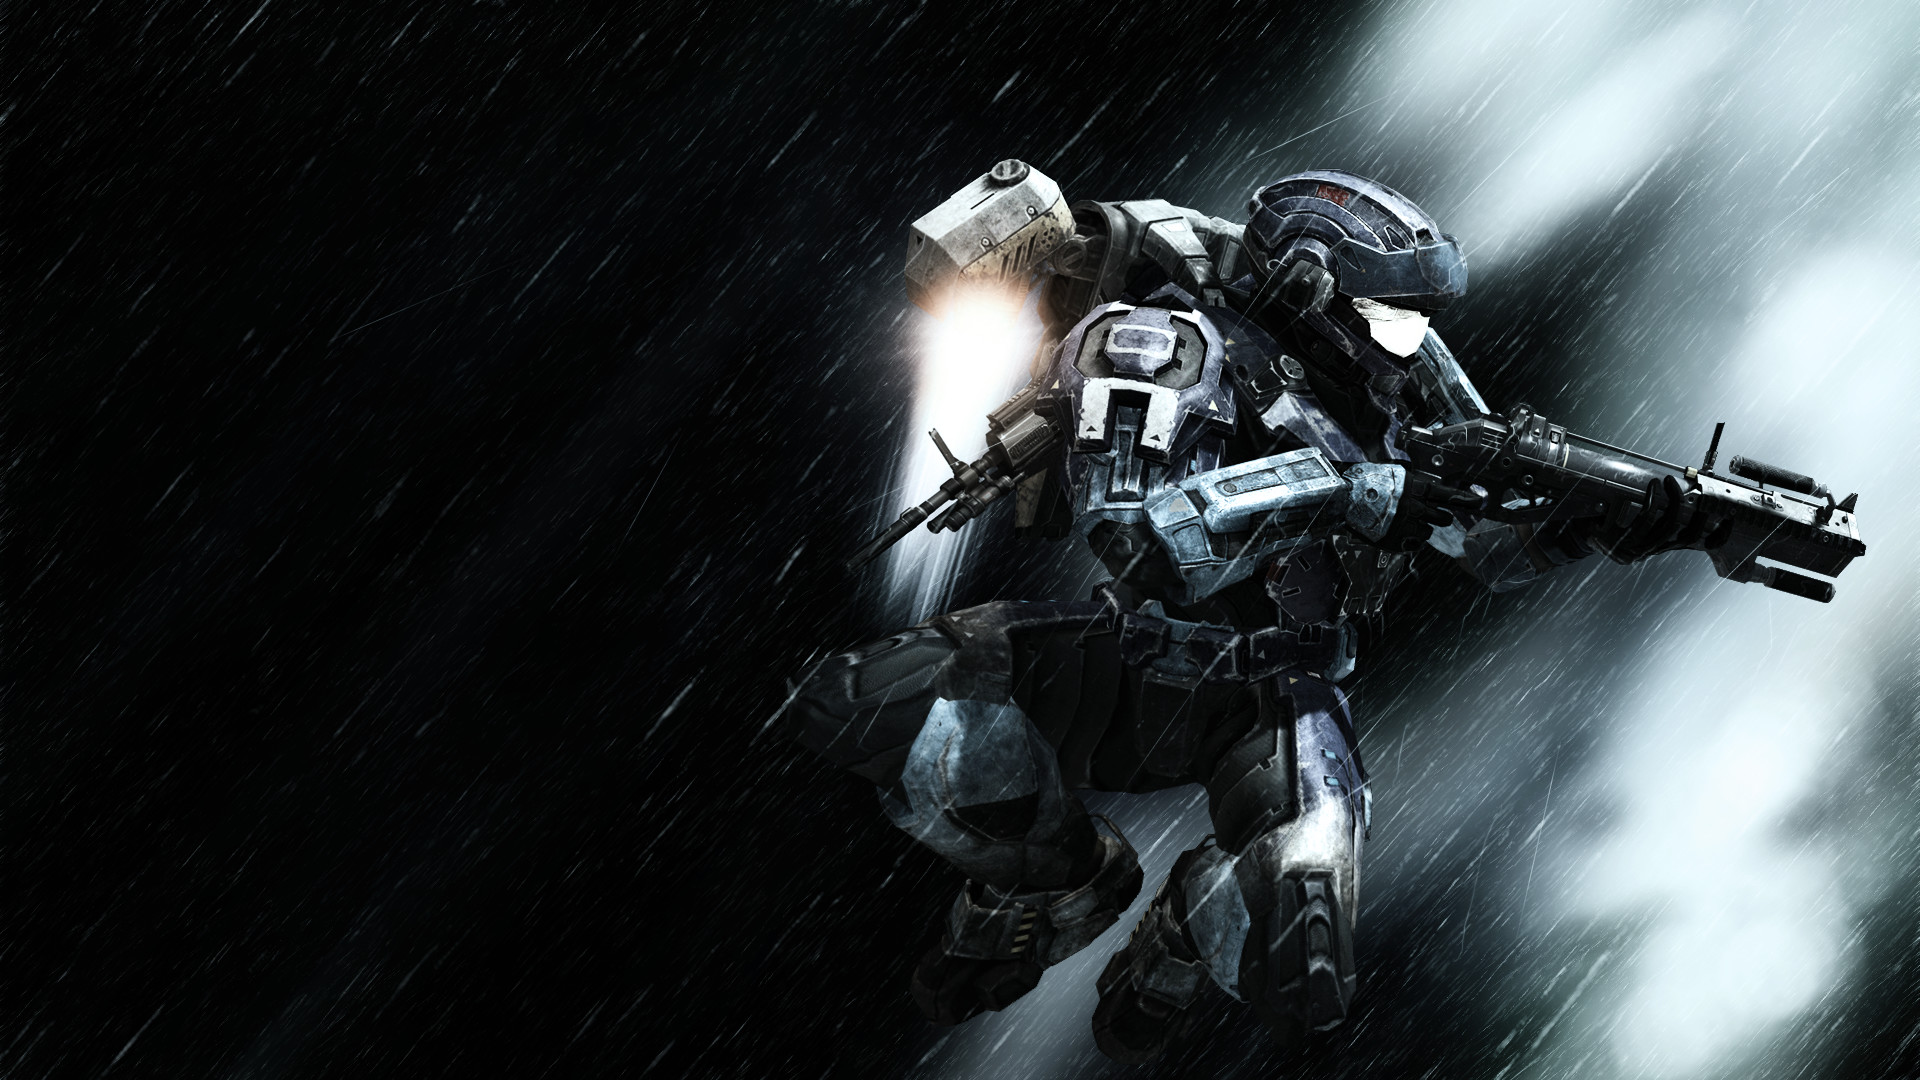 Halo Reach Emile Wallpapers (76+ images)